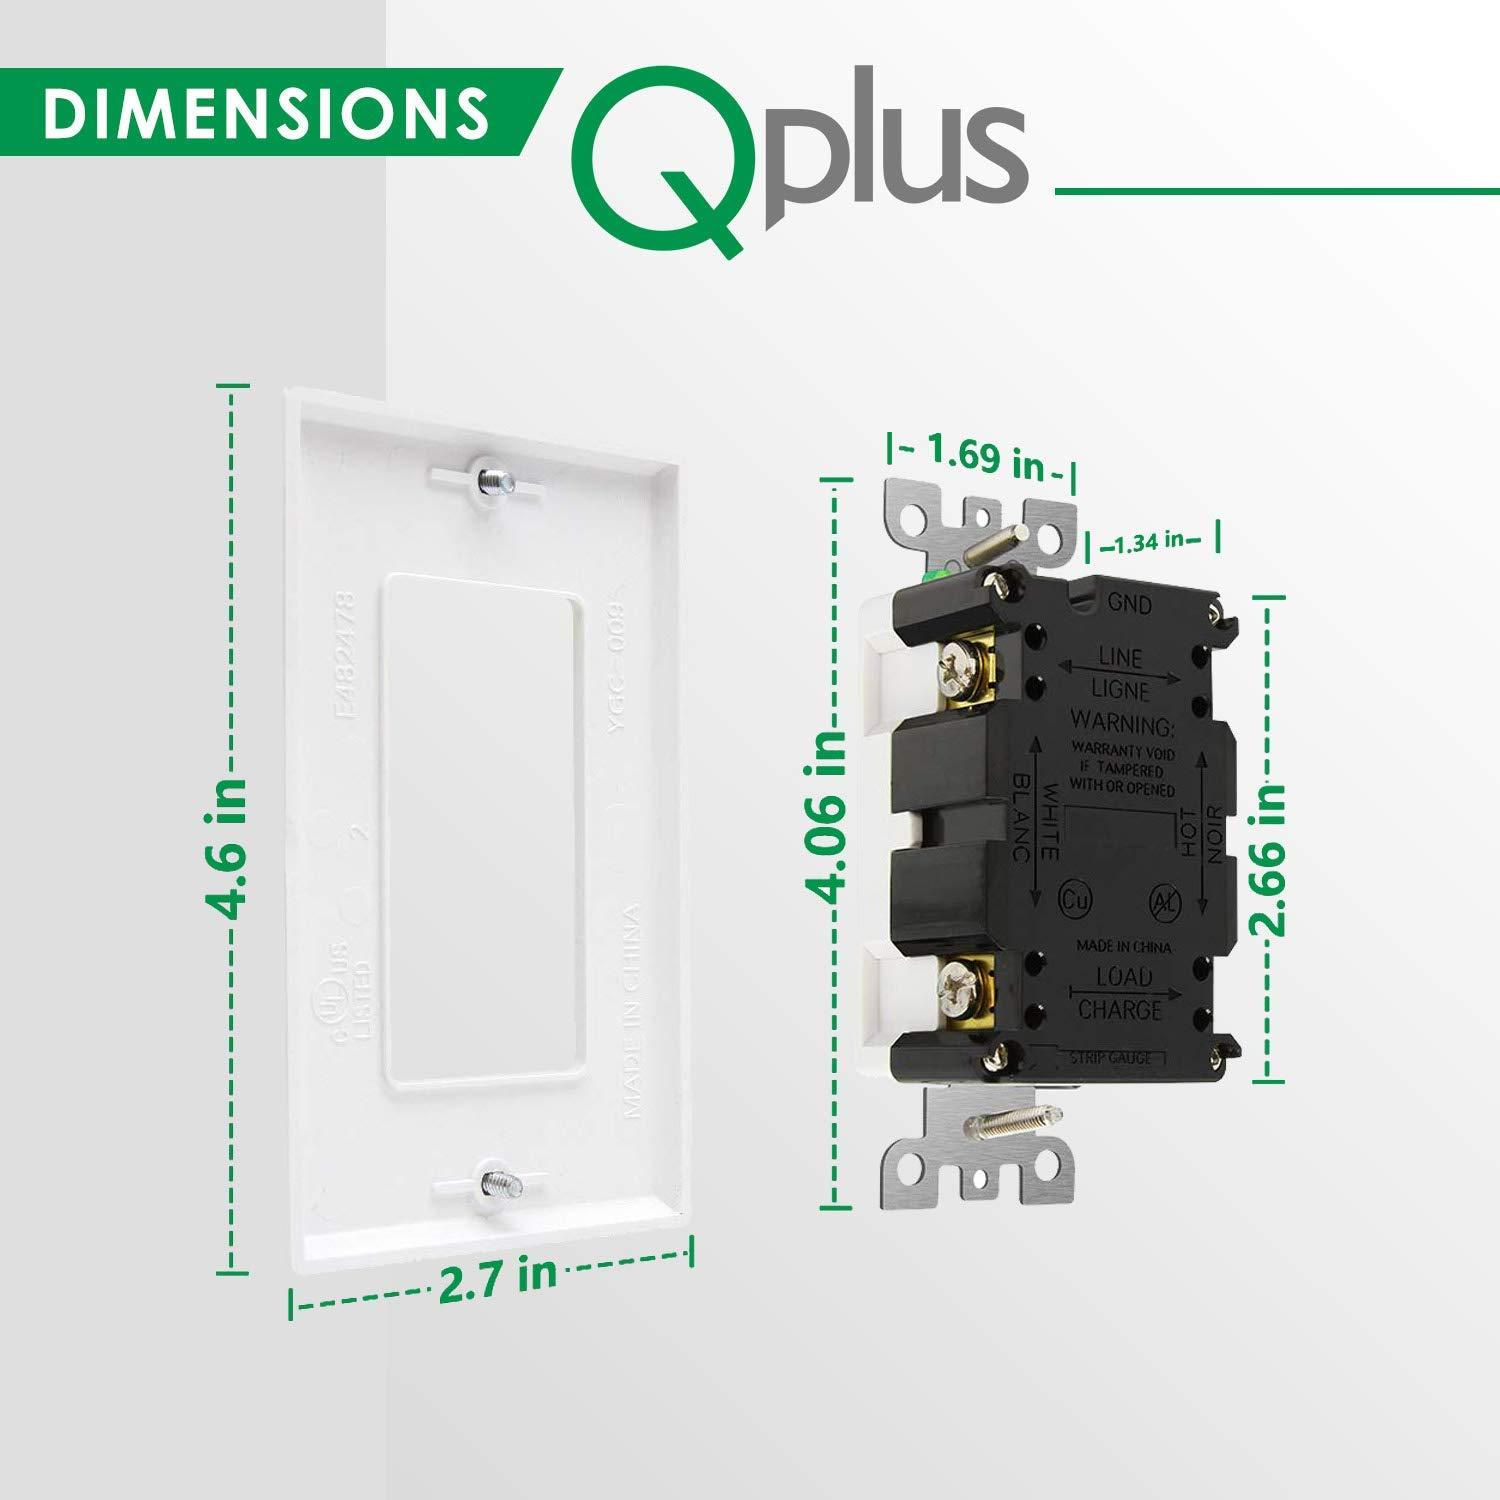 QPLUS 15Amp Tamper & Water Resistant GFCI Receptacle Outlet with LED Indicator 1875W - UL Listed (Wall Plates & Screws Included) - QPlus Home - Brighten Your Life